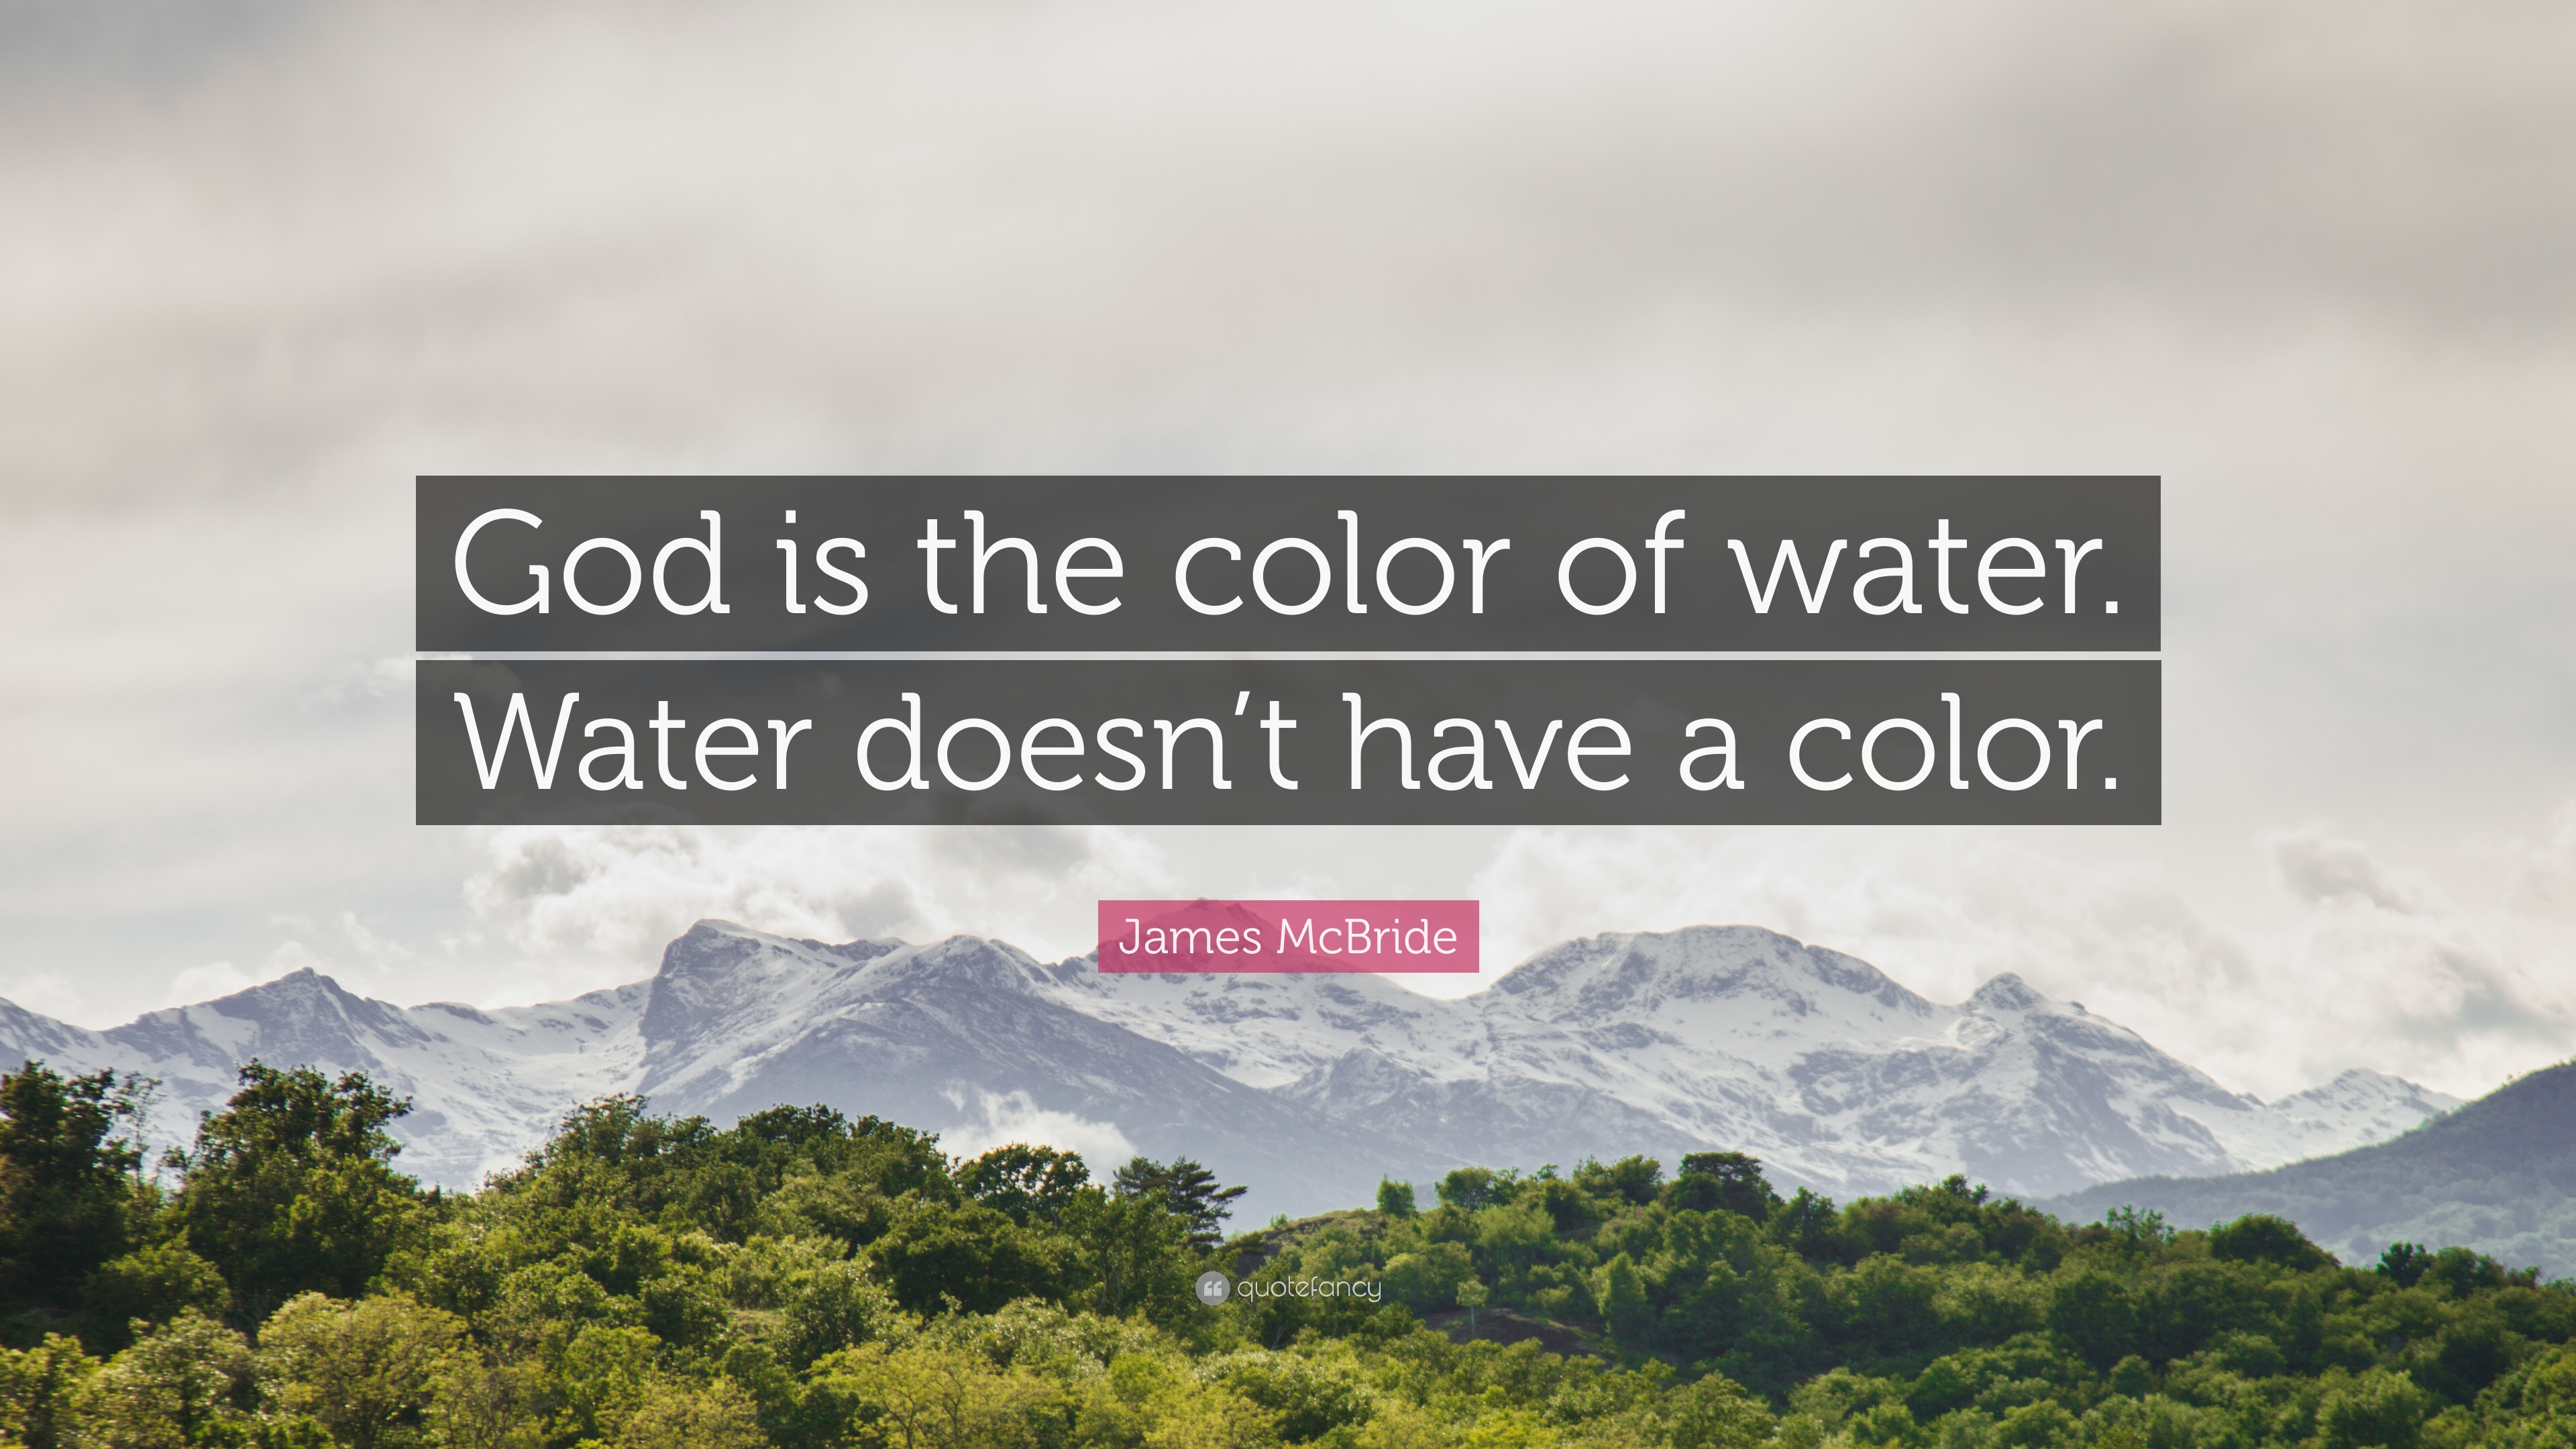 quotes from the book the color of water